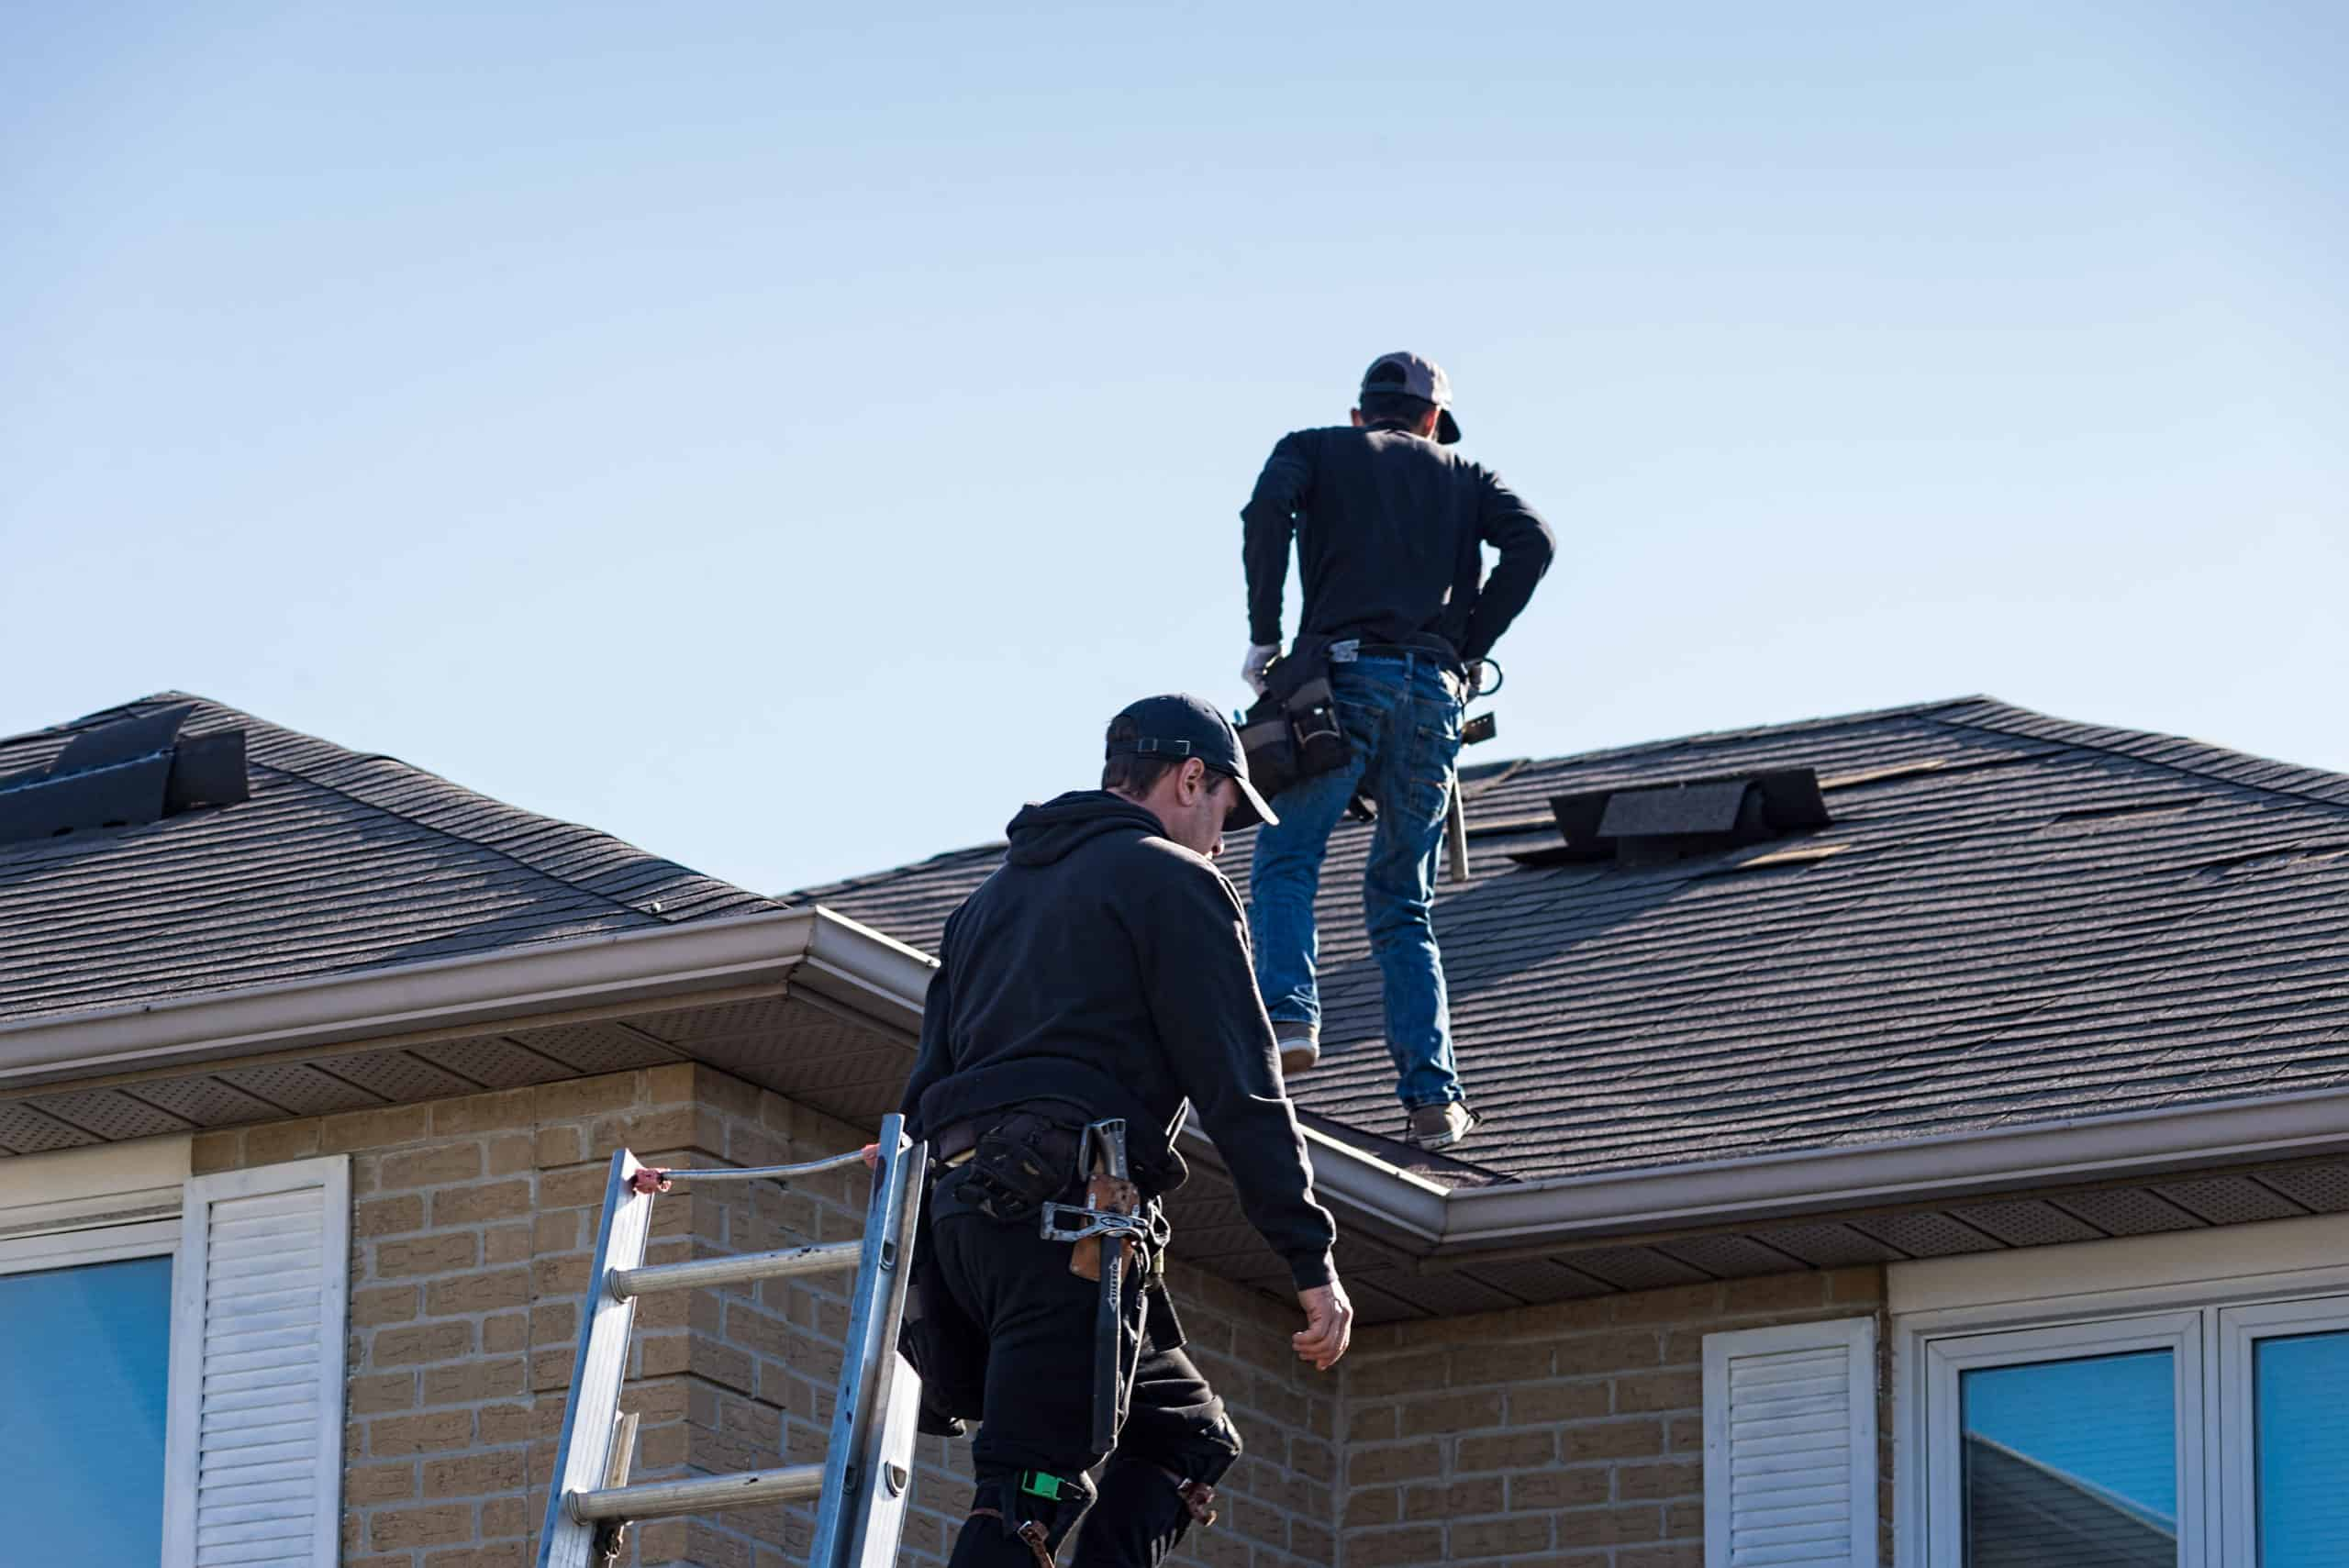 Two mean climbing onto a roof to inspect it